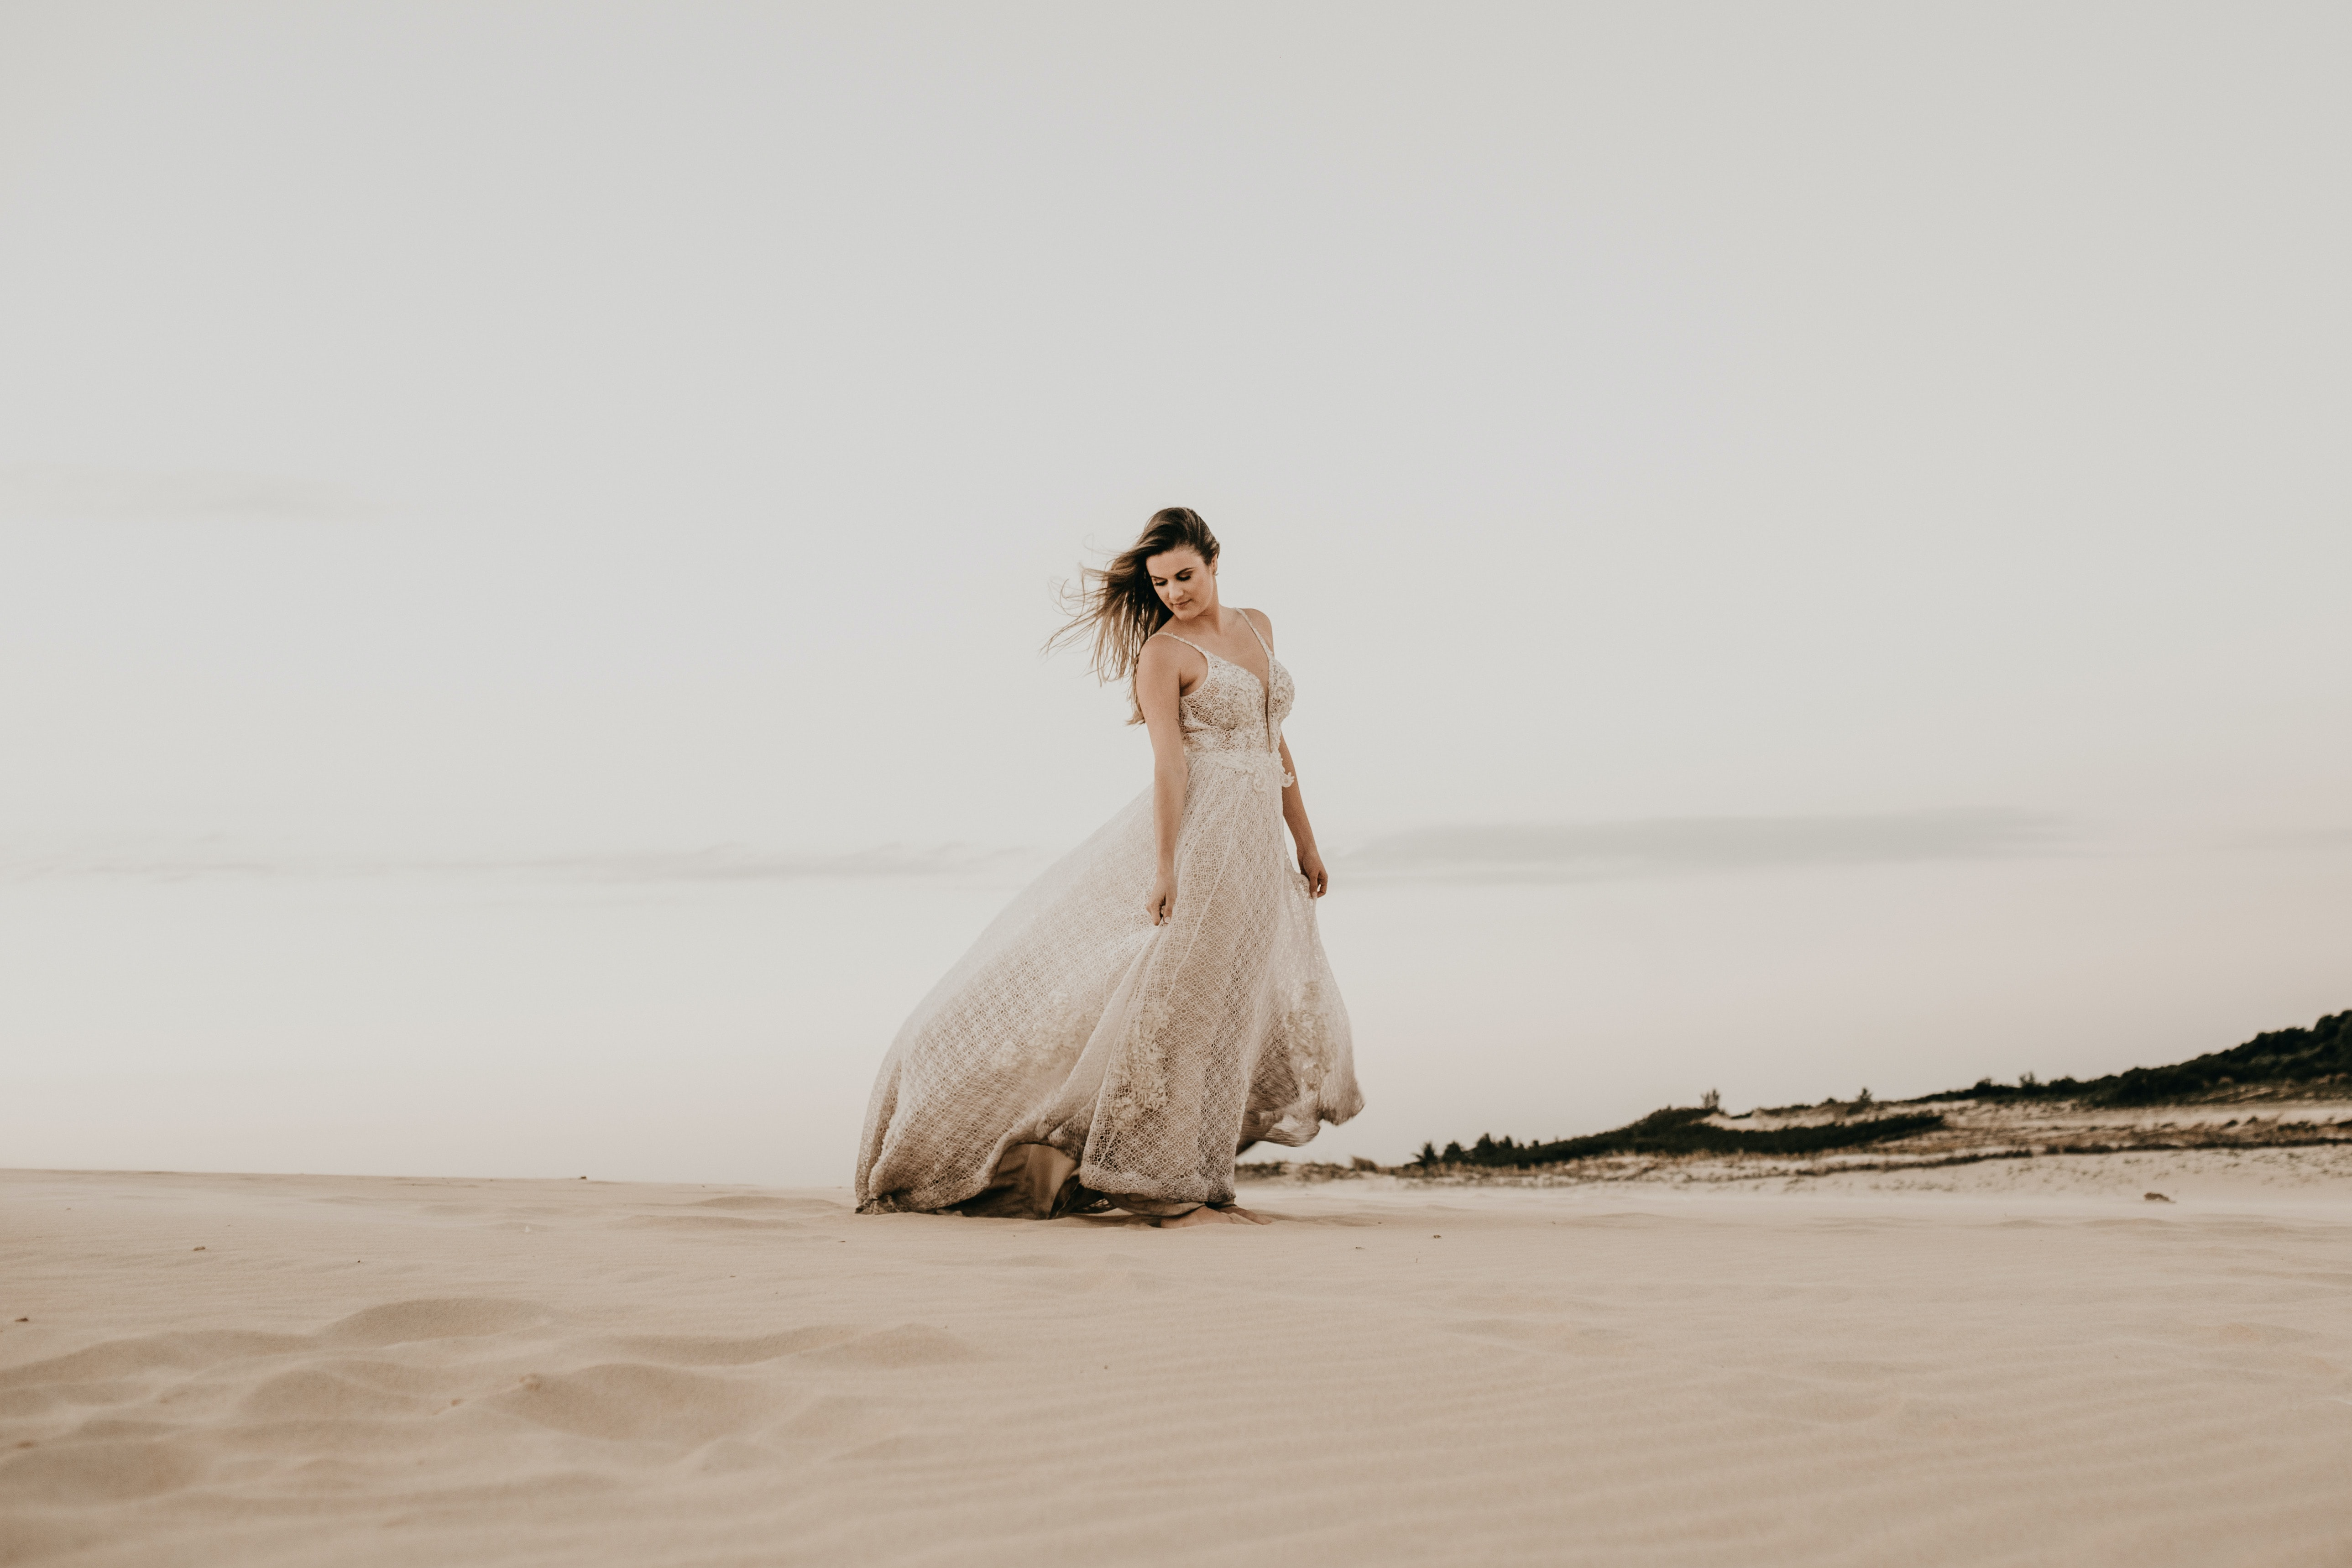 woman wearing white gown standing on sand during daytime